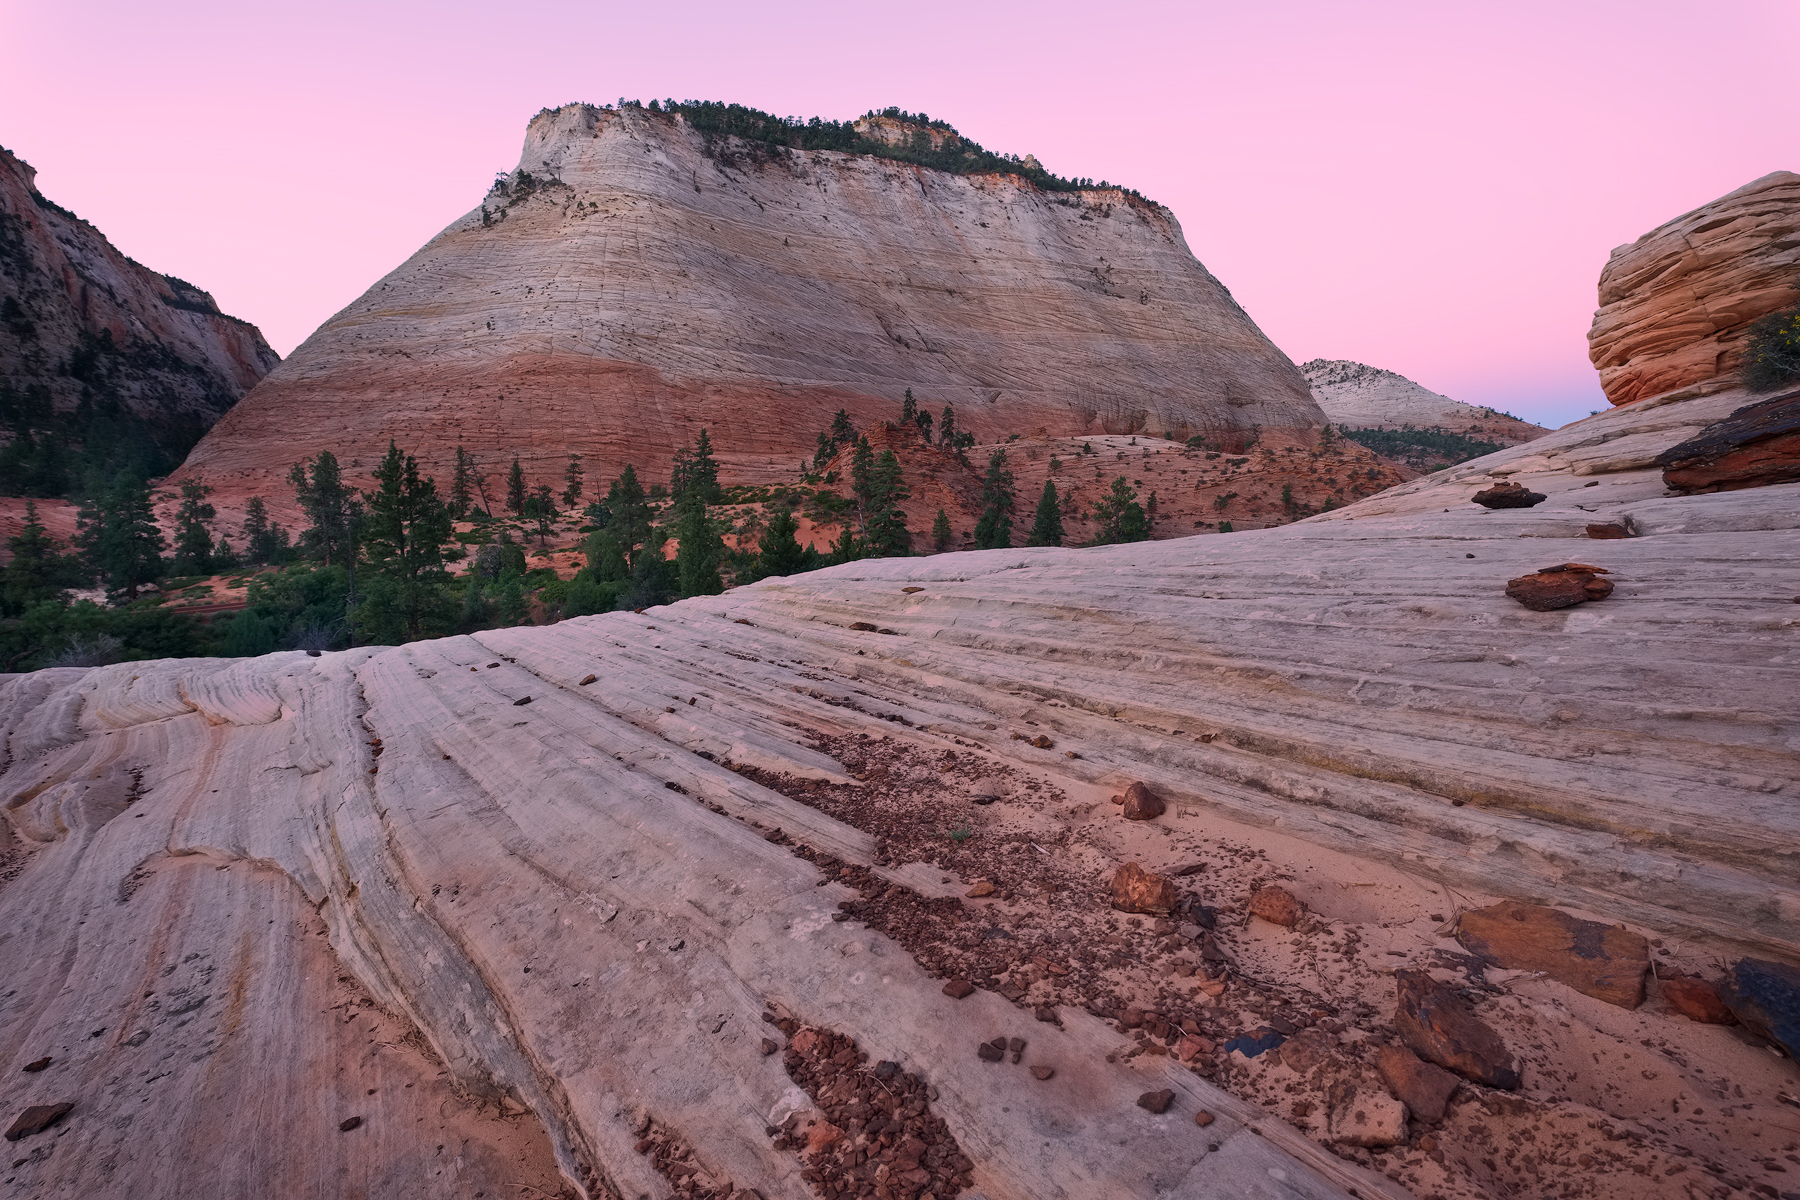 Dawn on the East Side, Zion National Park, UT.